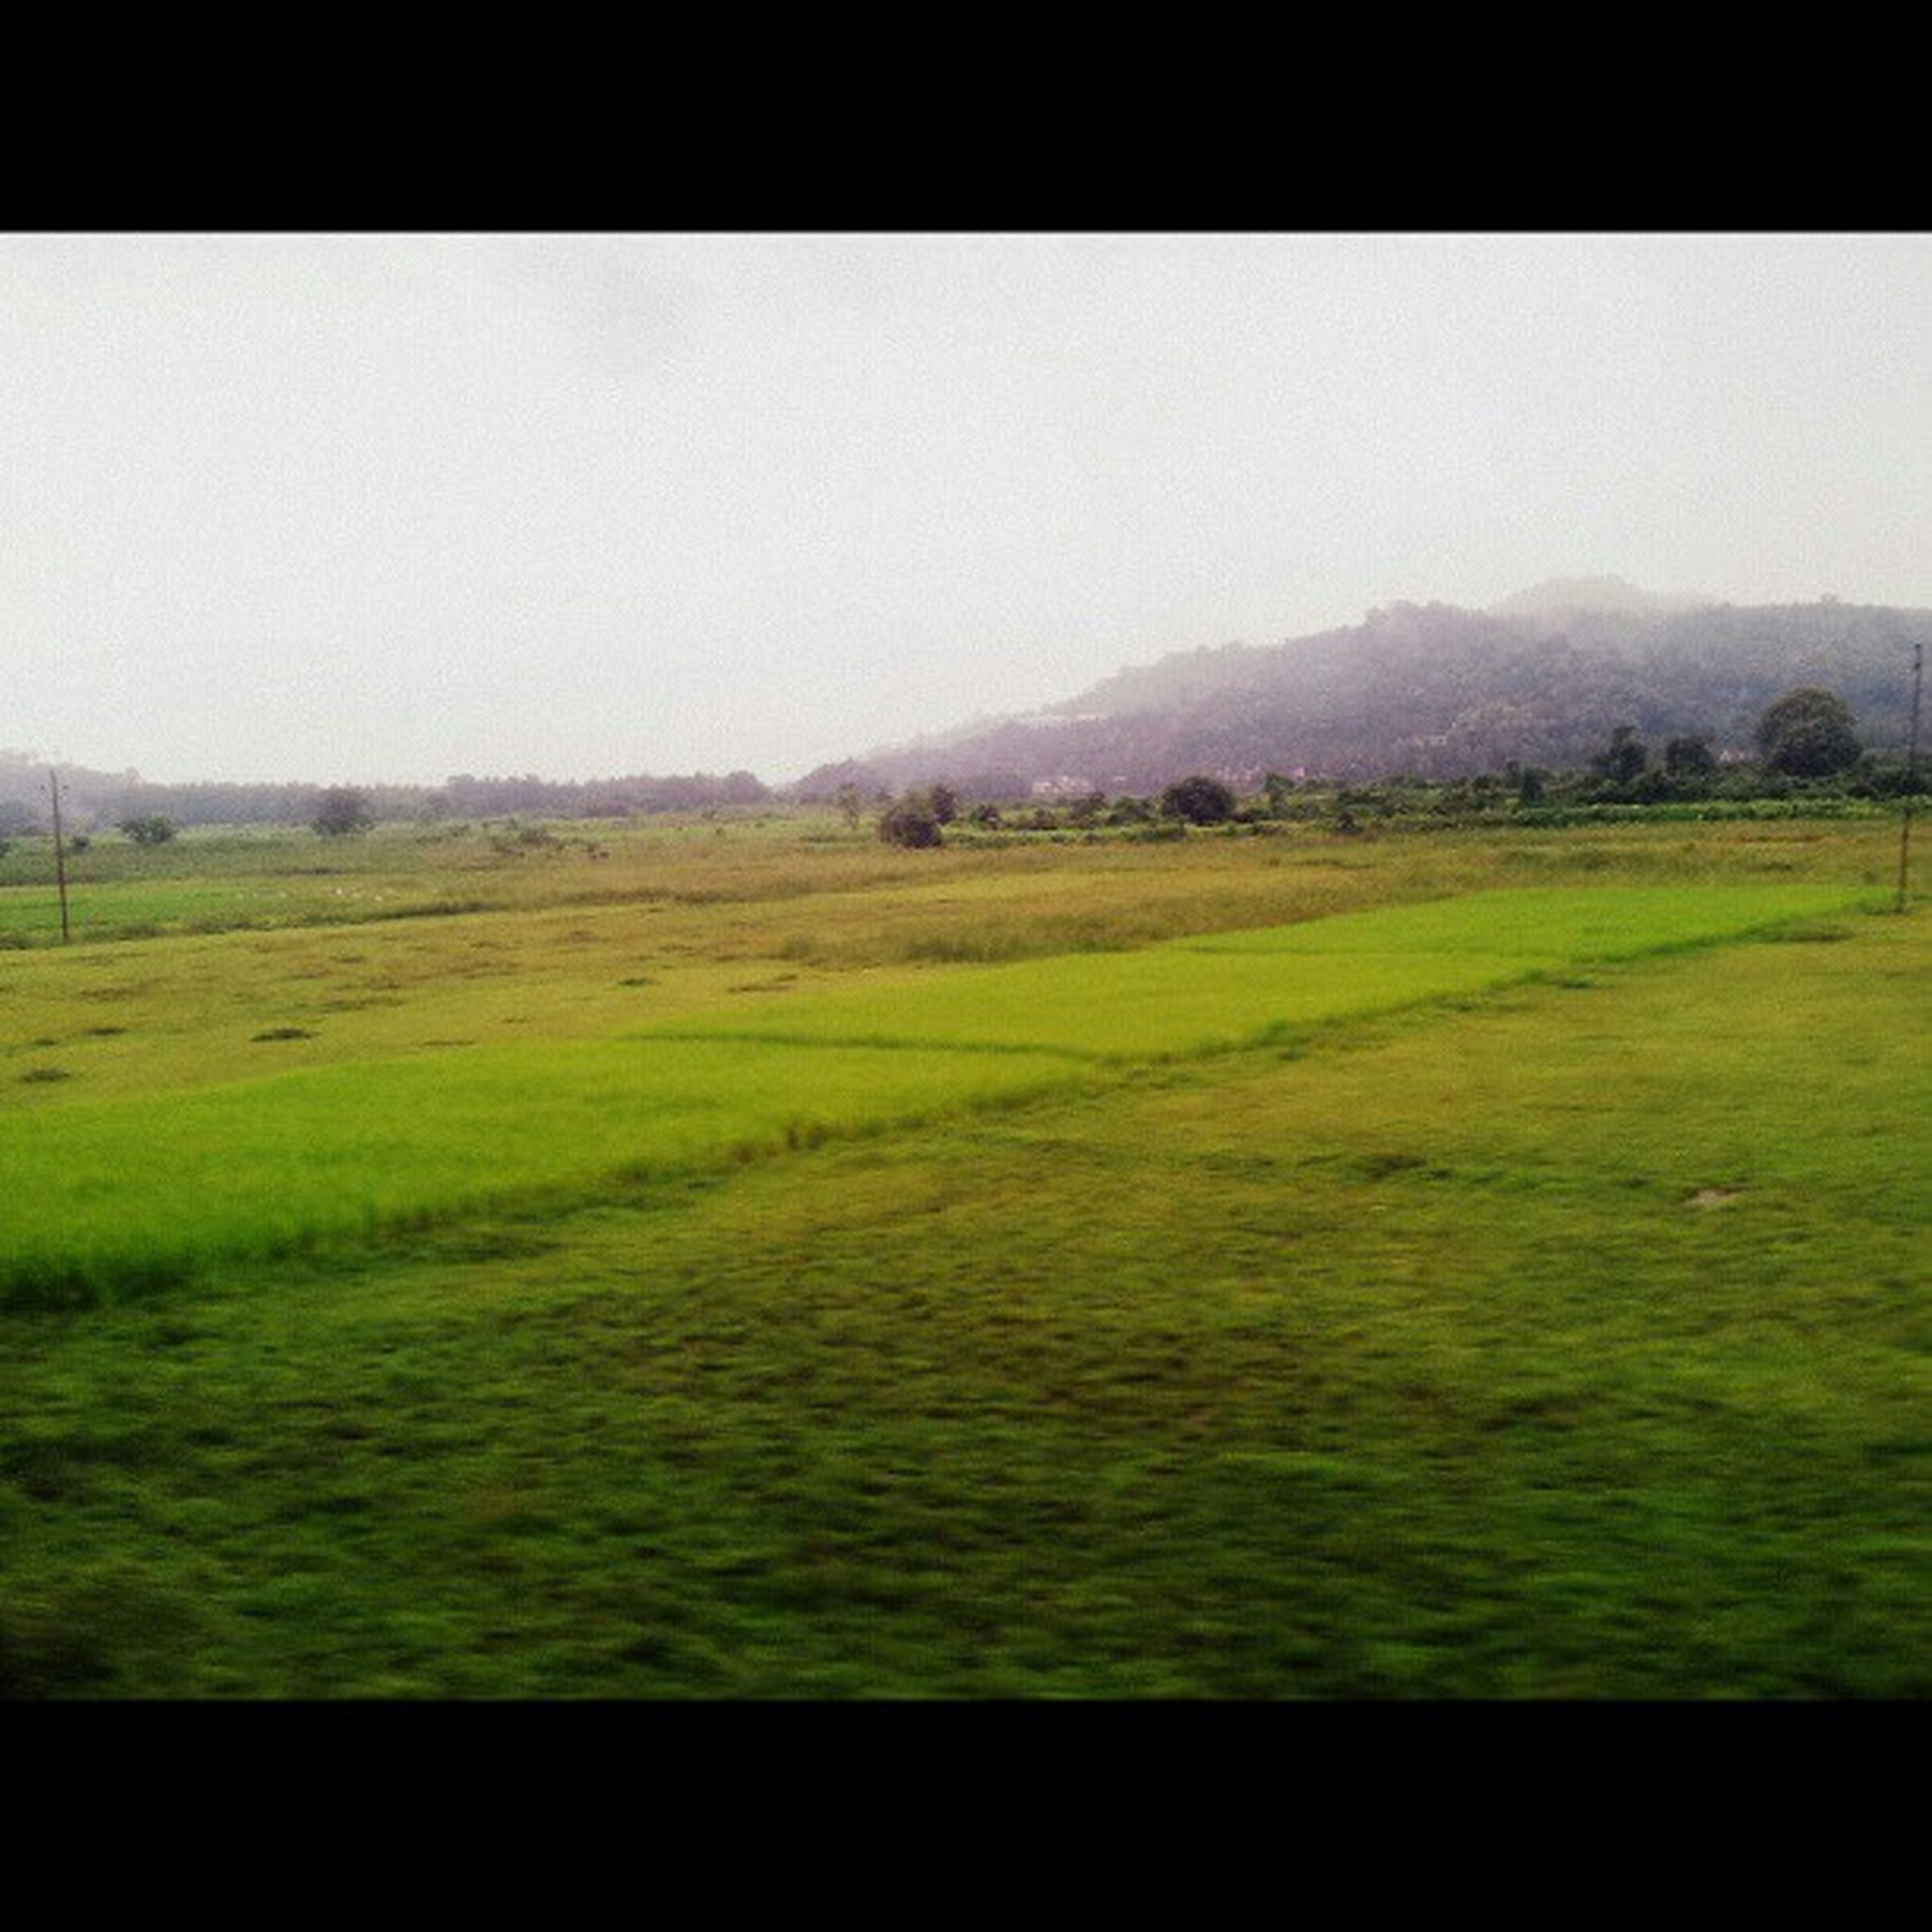 landscape, clear sky, field, tranquil scene, grass, copy space, tranquility, transfer print, scenics, beauty in nature, nature, auto post production filter, green color, rural scene, grassy, horizon over land, no people, idyllic, growth, outdoors